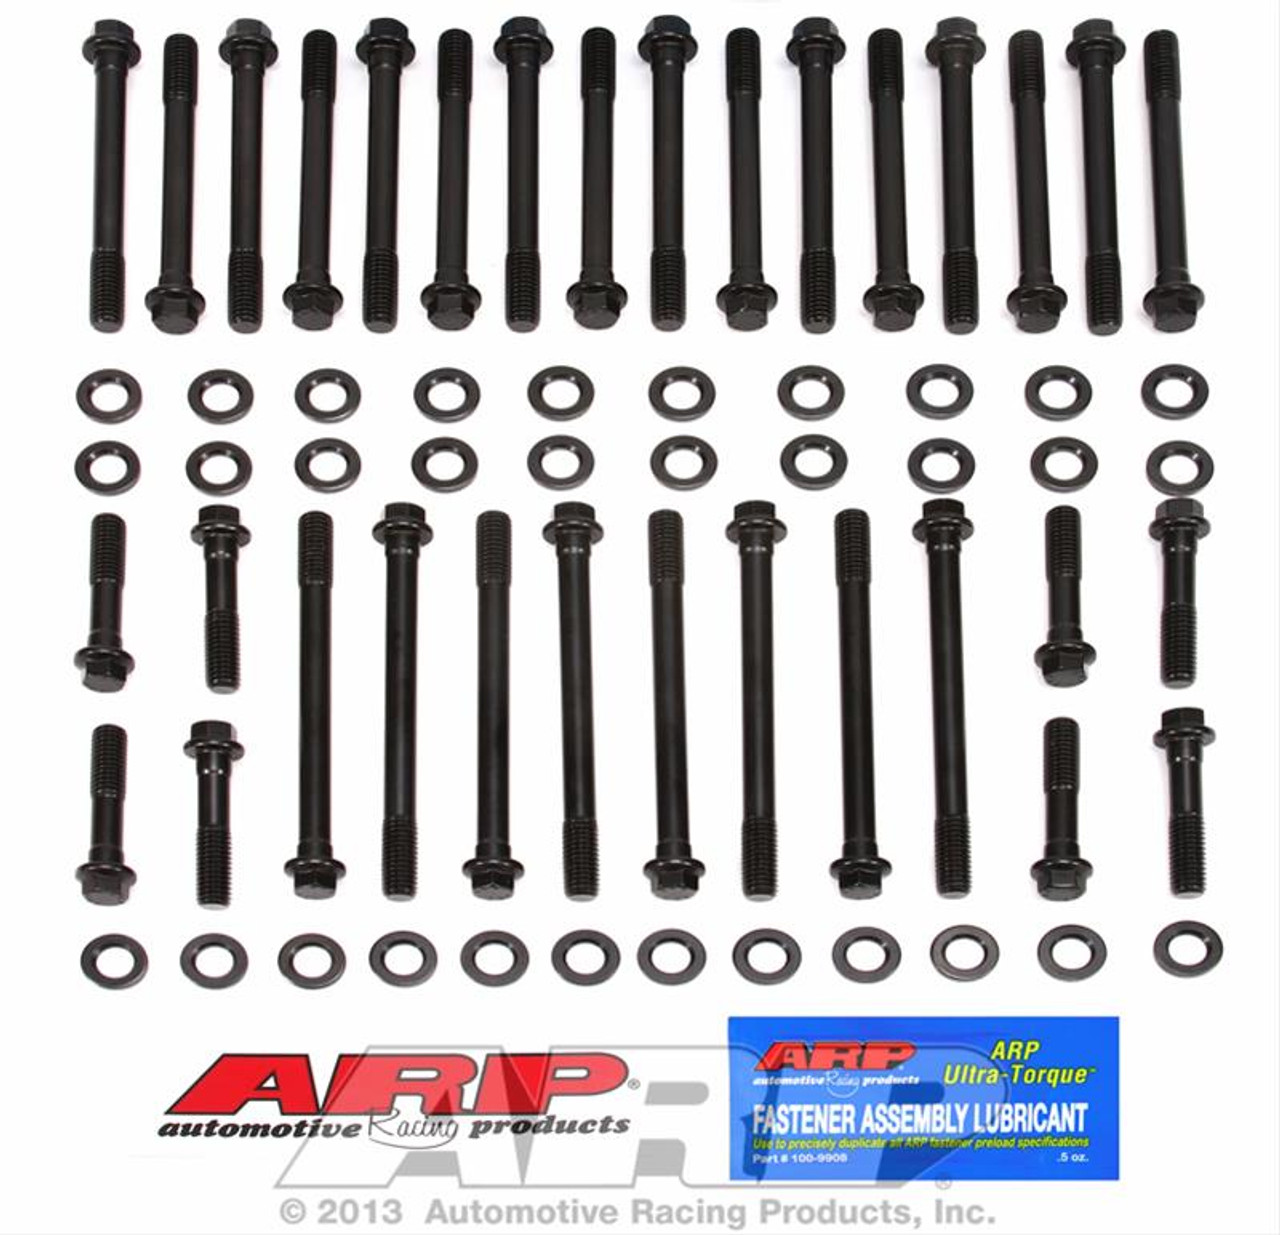 ARP Big Bock Chevrolet Hex Head  High Performance Series Cylinder Head Bolt Kits  Part # 135-3603